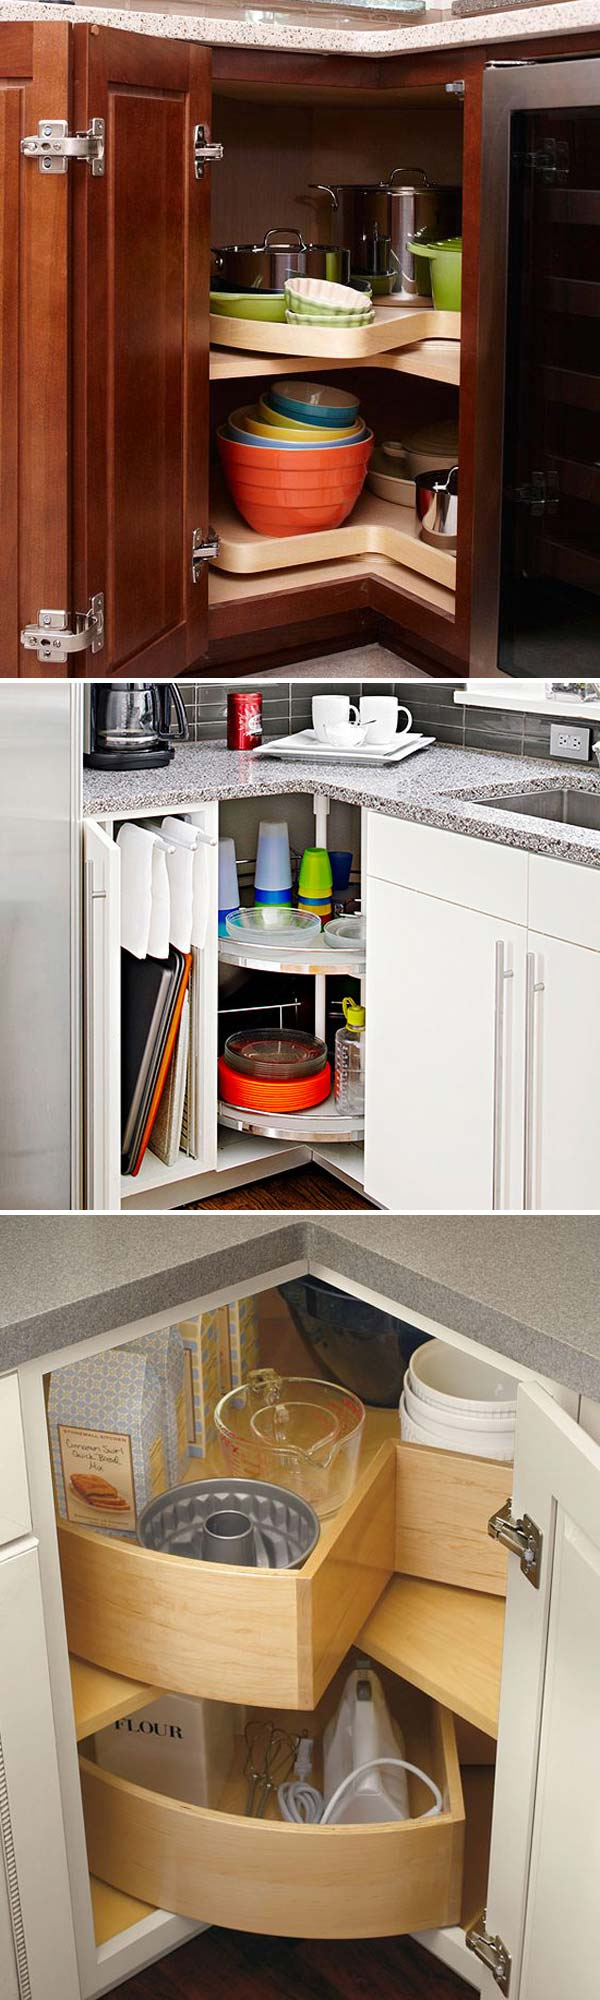 Fabulous s to Utilize The Space of Corner Kitchen Cabinets on ideas for kitchen table, ideas for kitchen painting, ideas for kitchen pantry, ideas for kitchen wine rack, ideas for kitchen hutch, ideas for kitchen shelves, ideas for kitchen desk, ideas for kitchen bar,